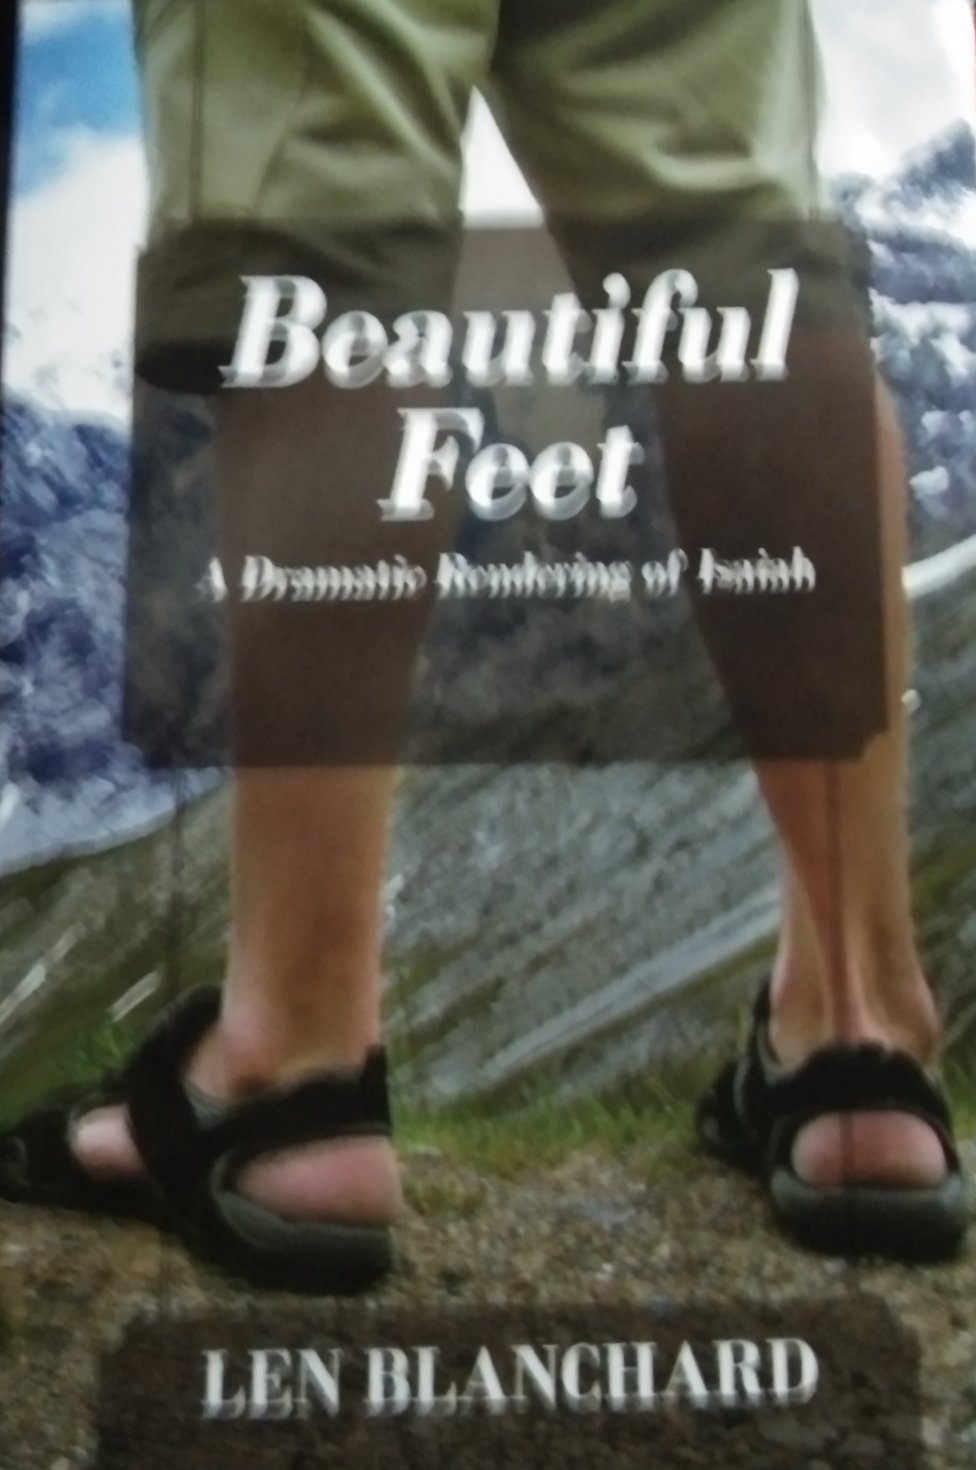 Beautiful feet by len blanchard